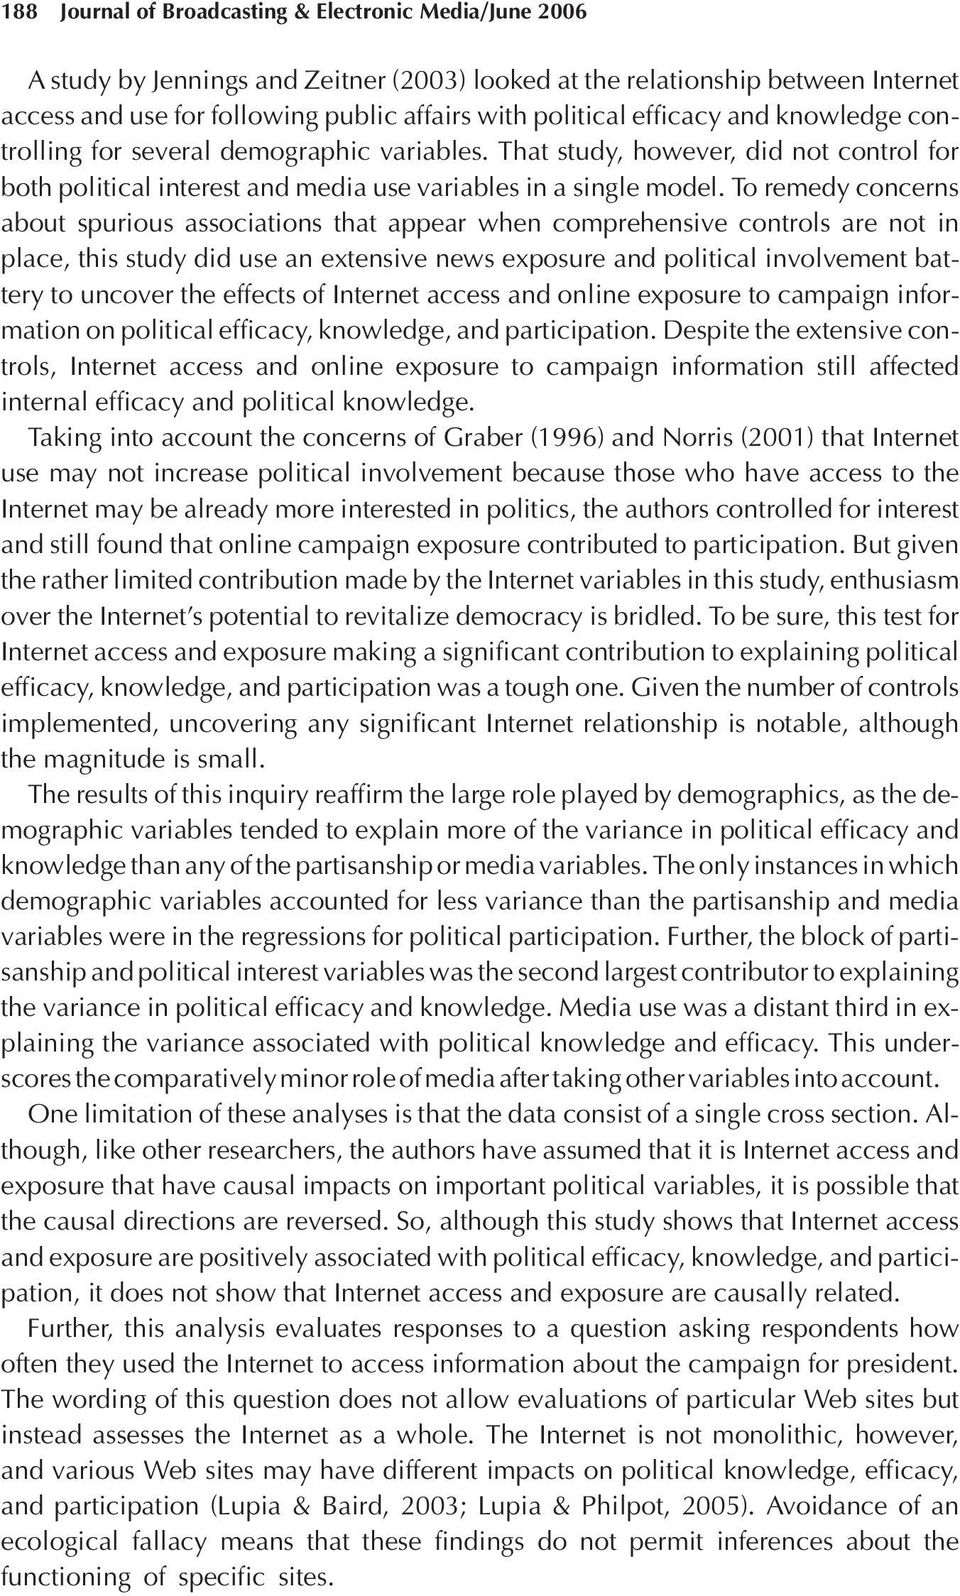 To remedy concerns about spurious associations that appear when comprehensive controls are not in place, this study did use an extensive news exposure and political involvement battery to uncover the